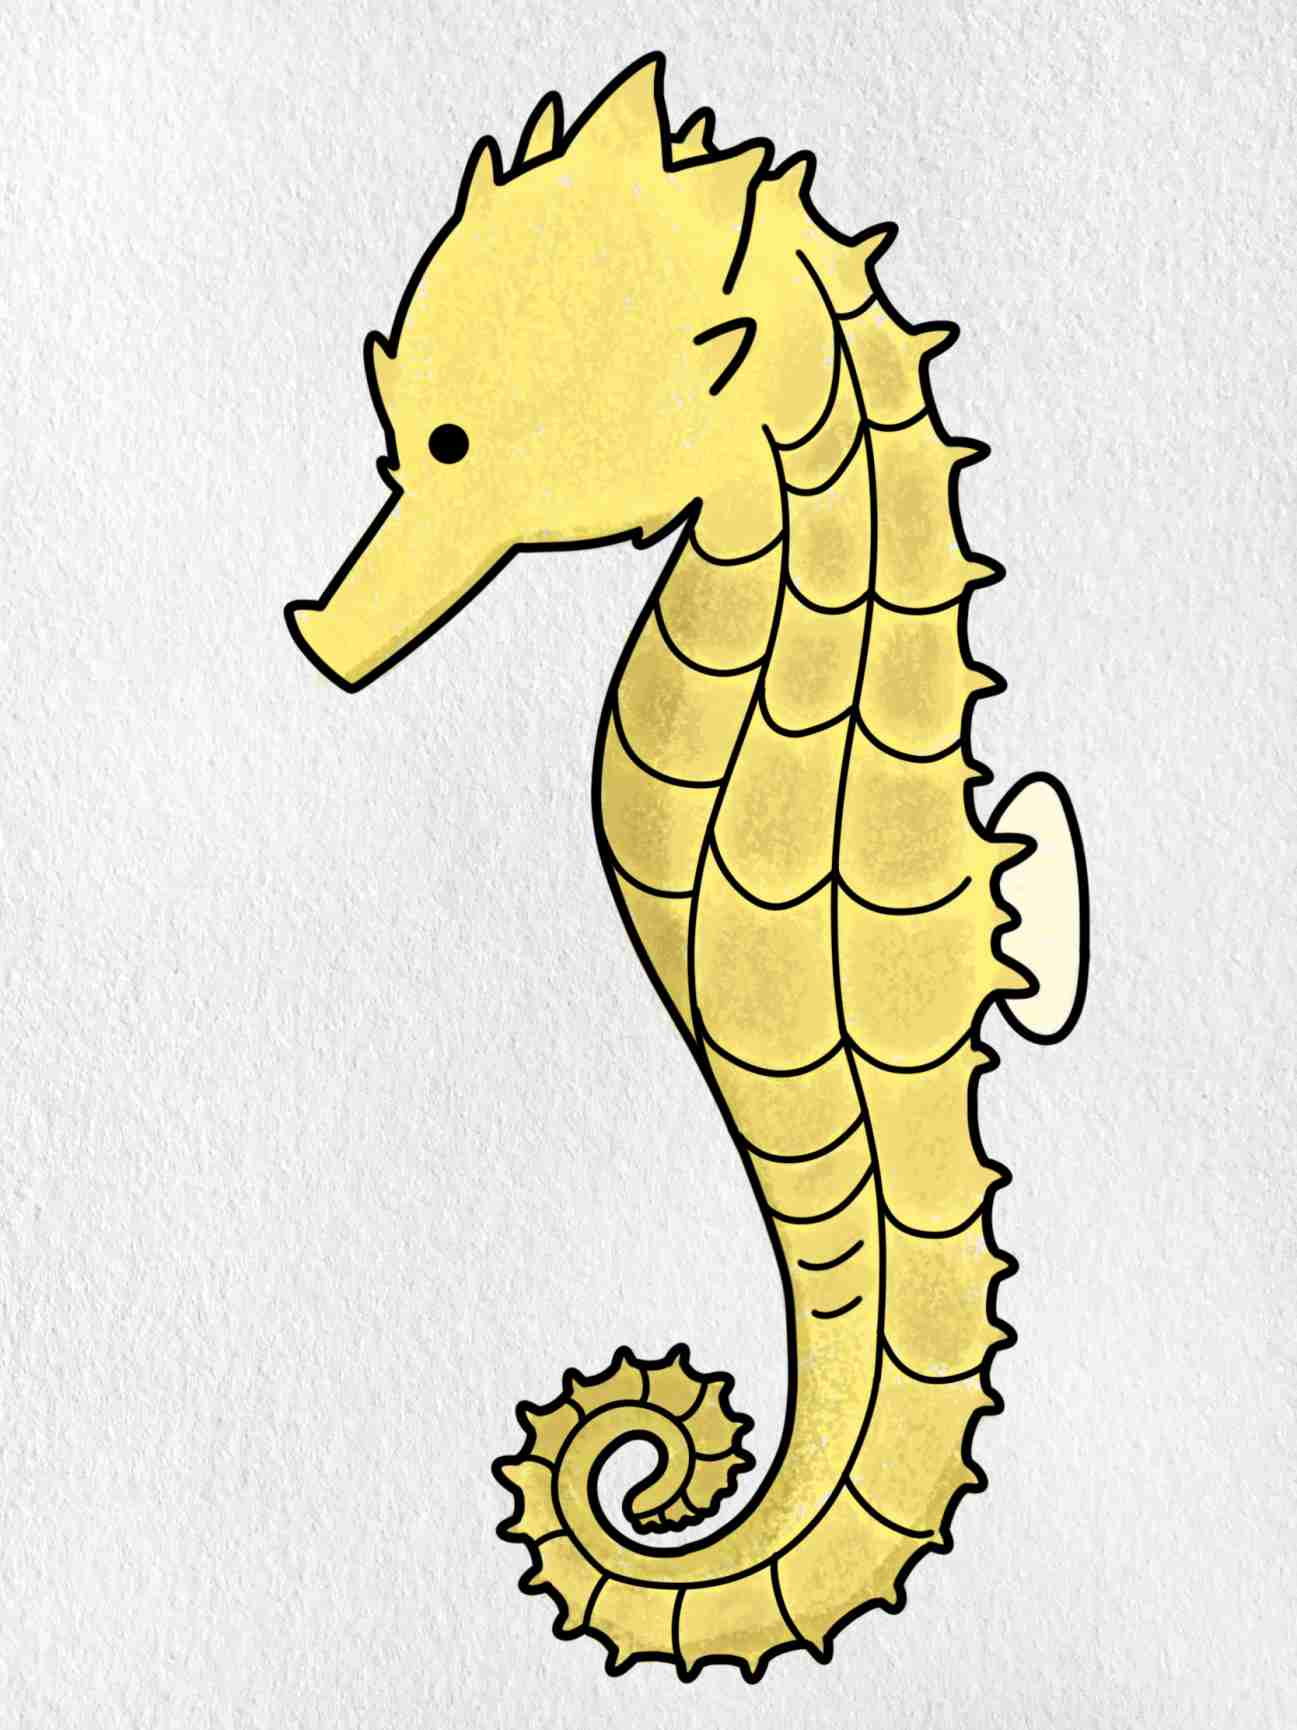 How To Draw A Seahorse: Step 9